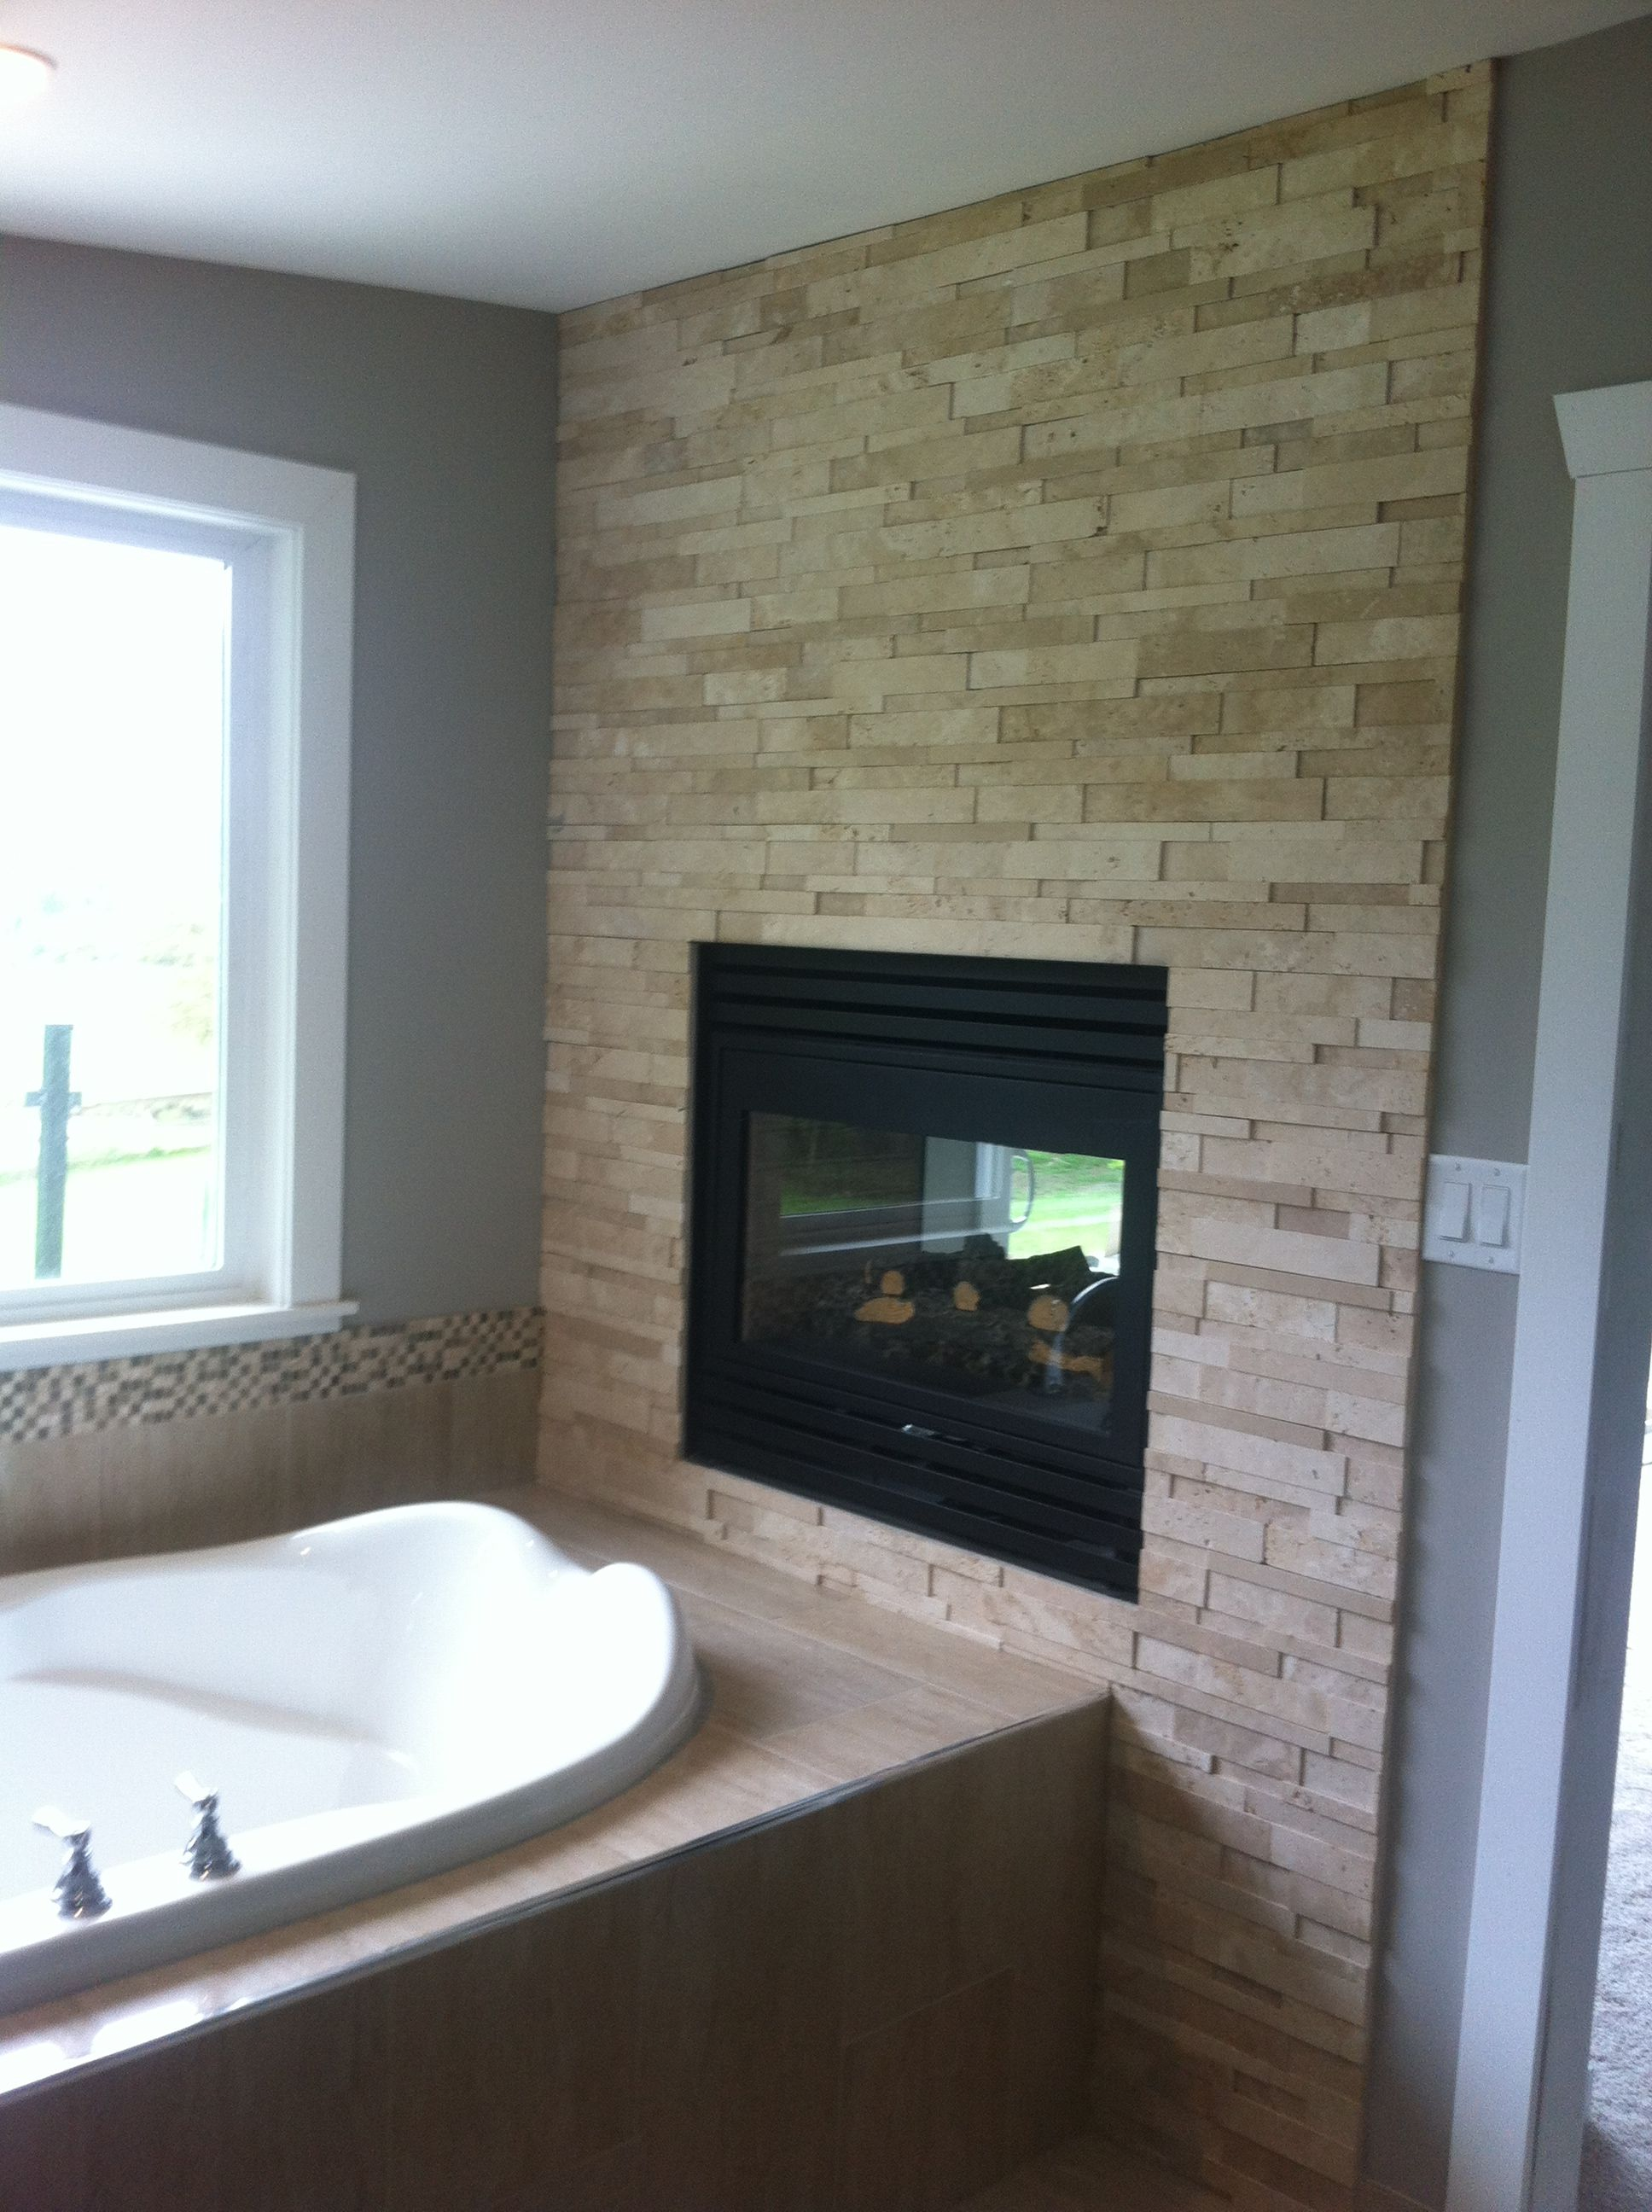 Bungalow Fireplace Mantel Travertine Fireplace Basement Remodel Fireplace